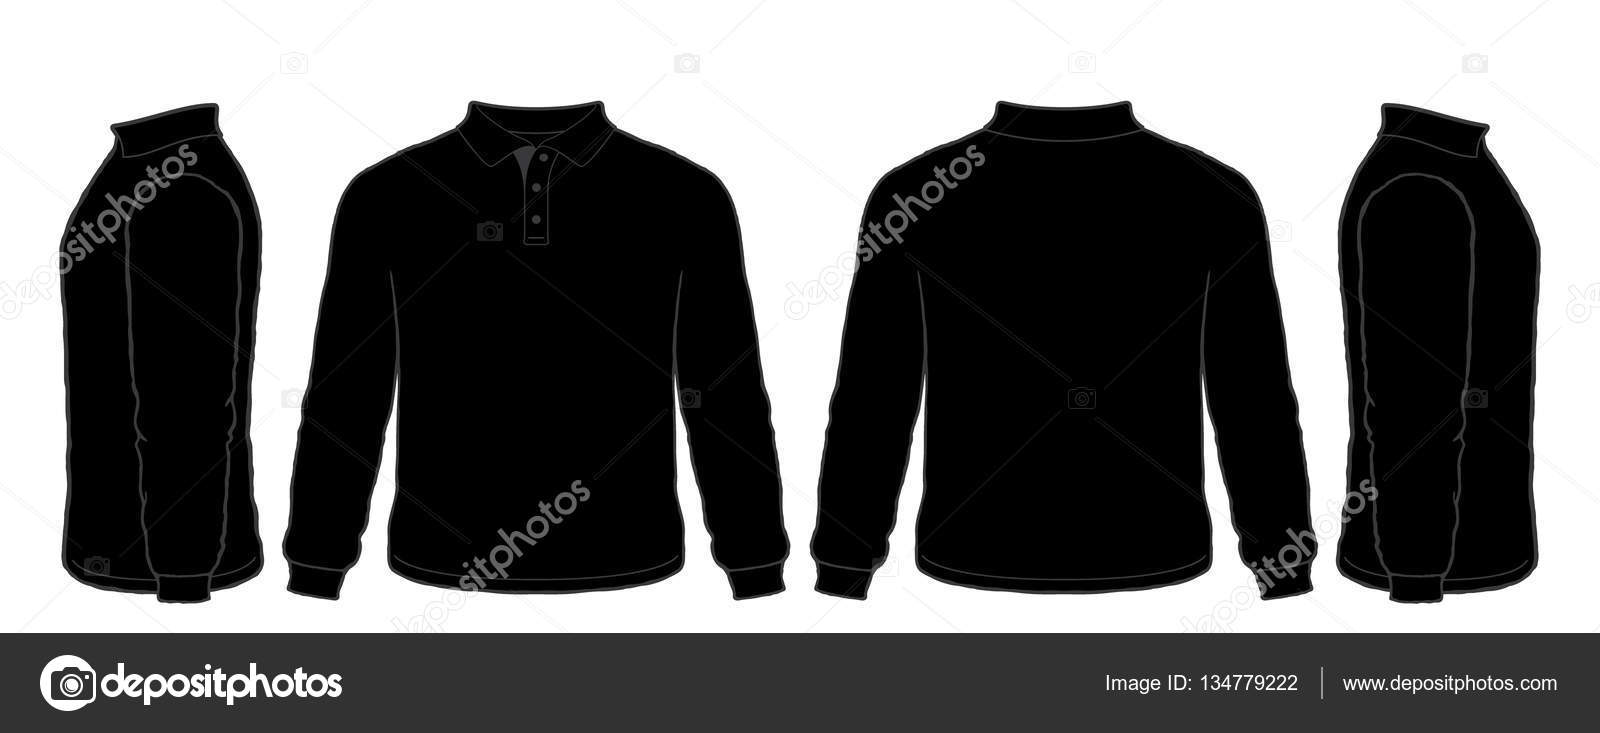 Blank black t shirt front and back - Black Long Sleeve Polo Shirt Vector Set Front Side Back Views Stock Illustration